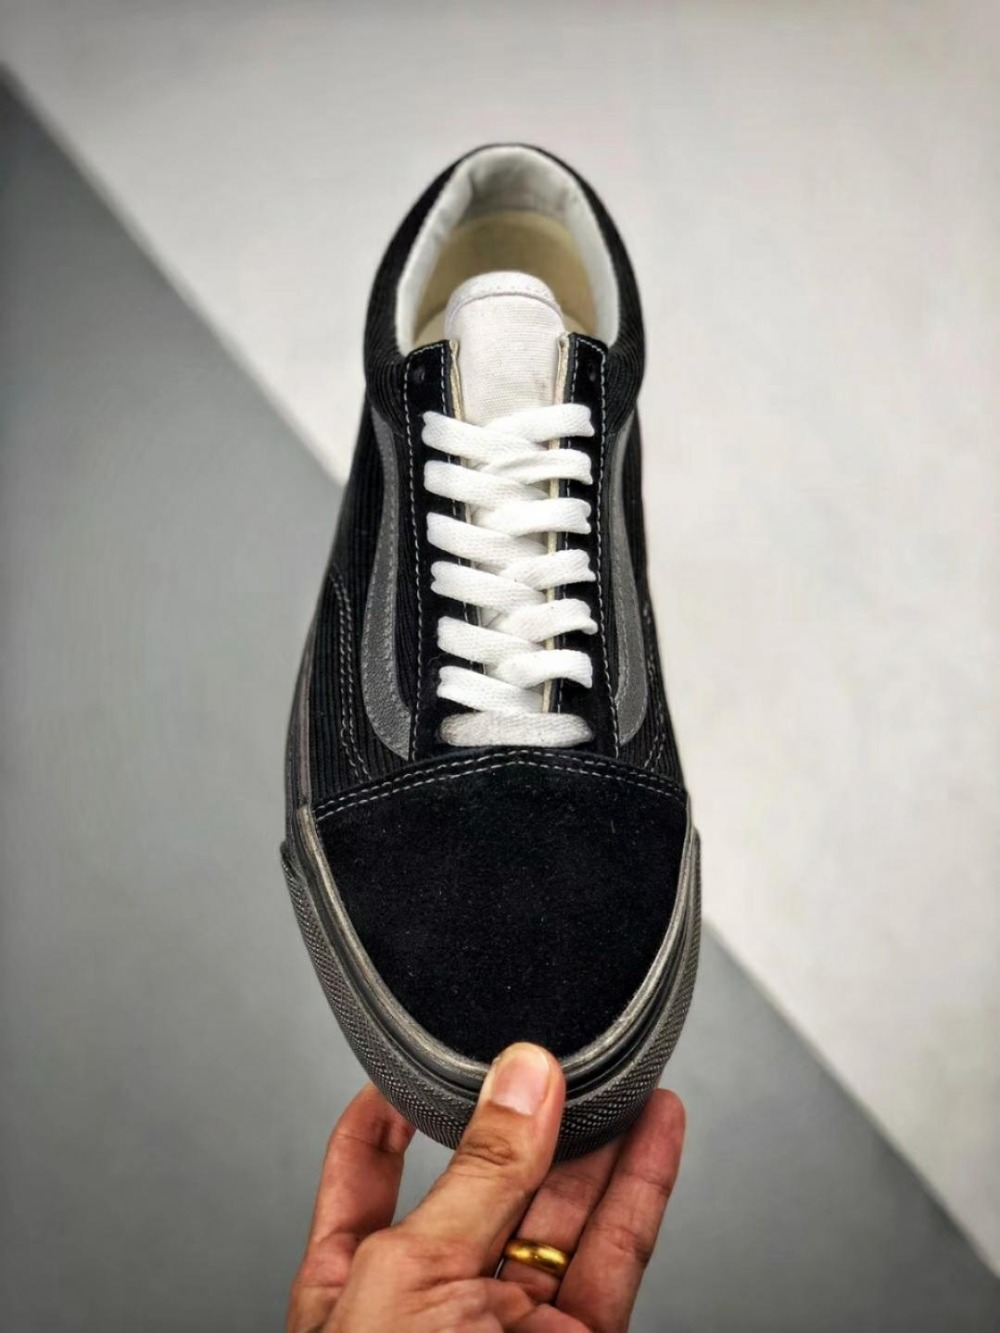 8be37c8ed6522a VANS Fear of God x Skateboard Shoes Men s Leisure Canvas Antique Sneakers  The do old Women s shoes size 36 44-in Weightlifting Shoes from Sports ...